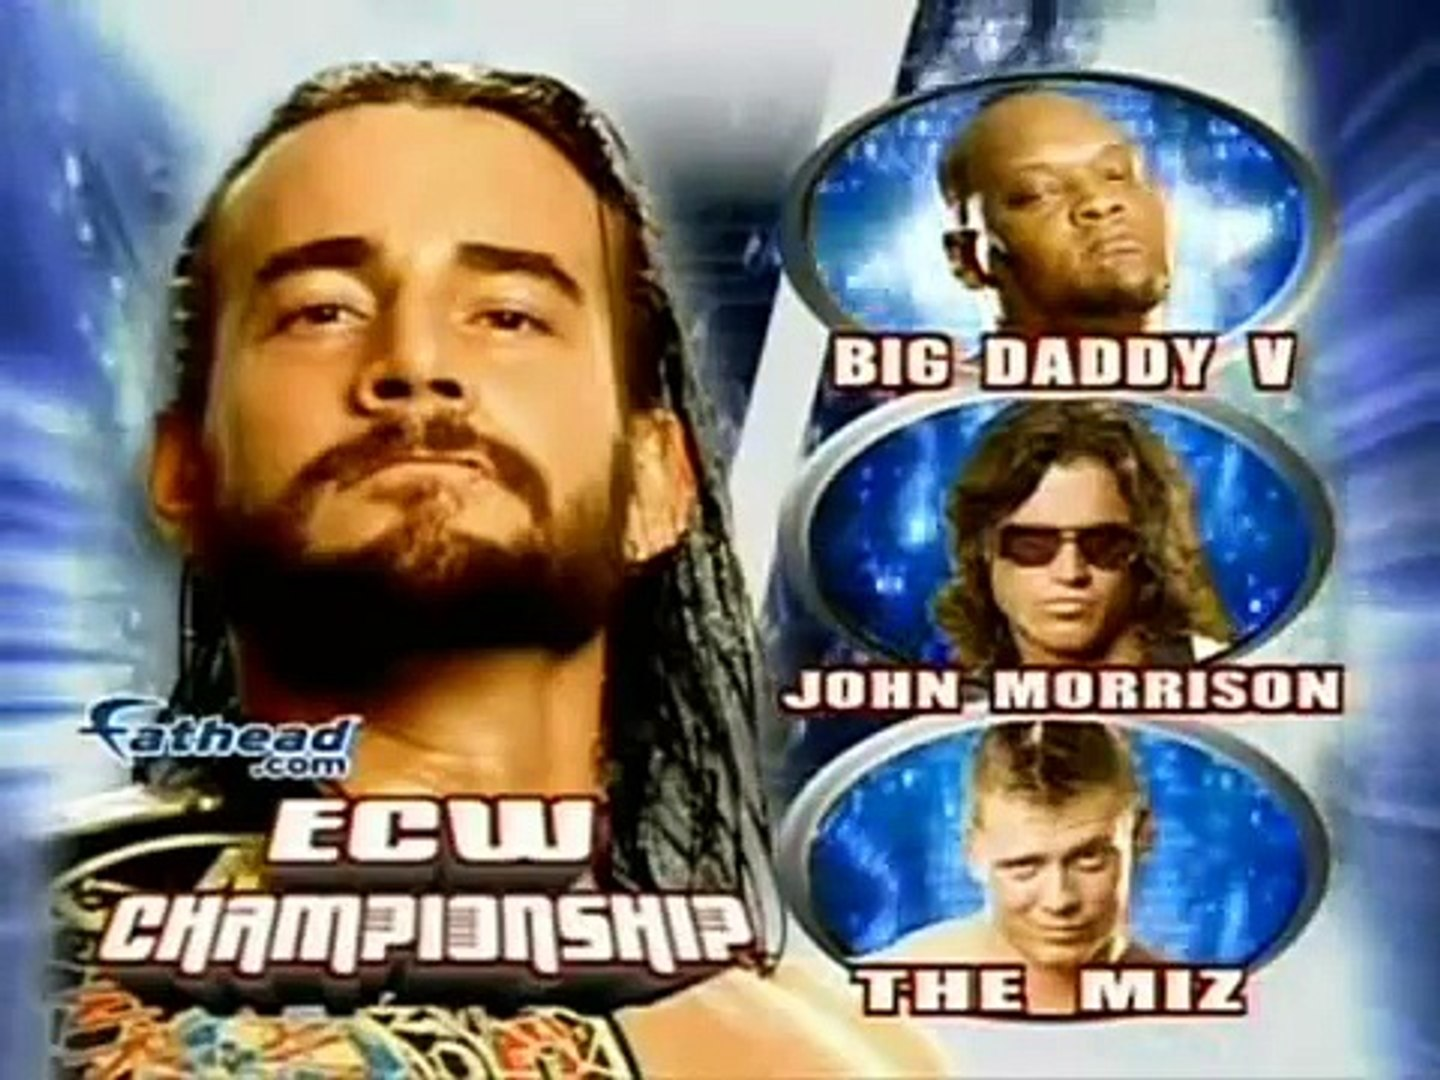 Wwe Cyber Sunday 2007 Match Card